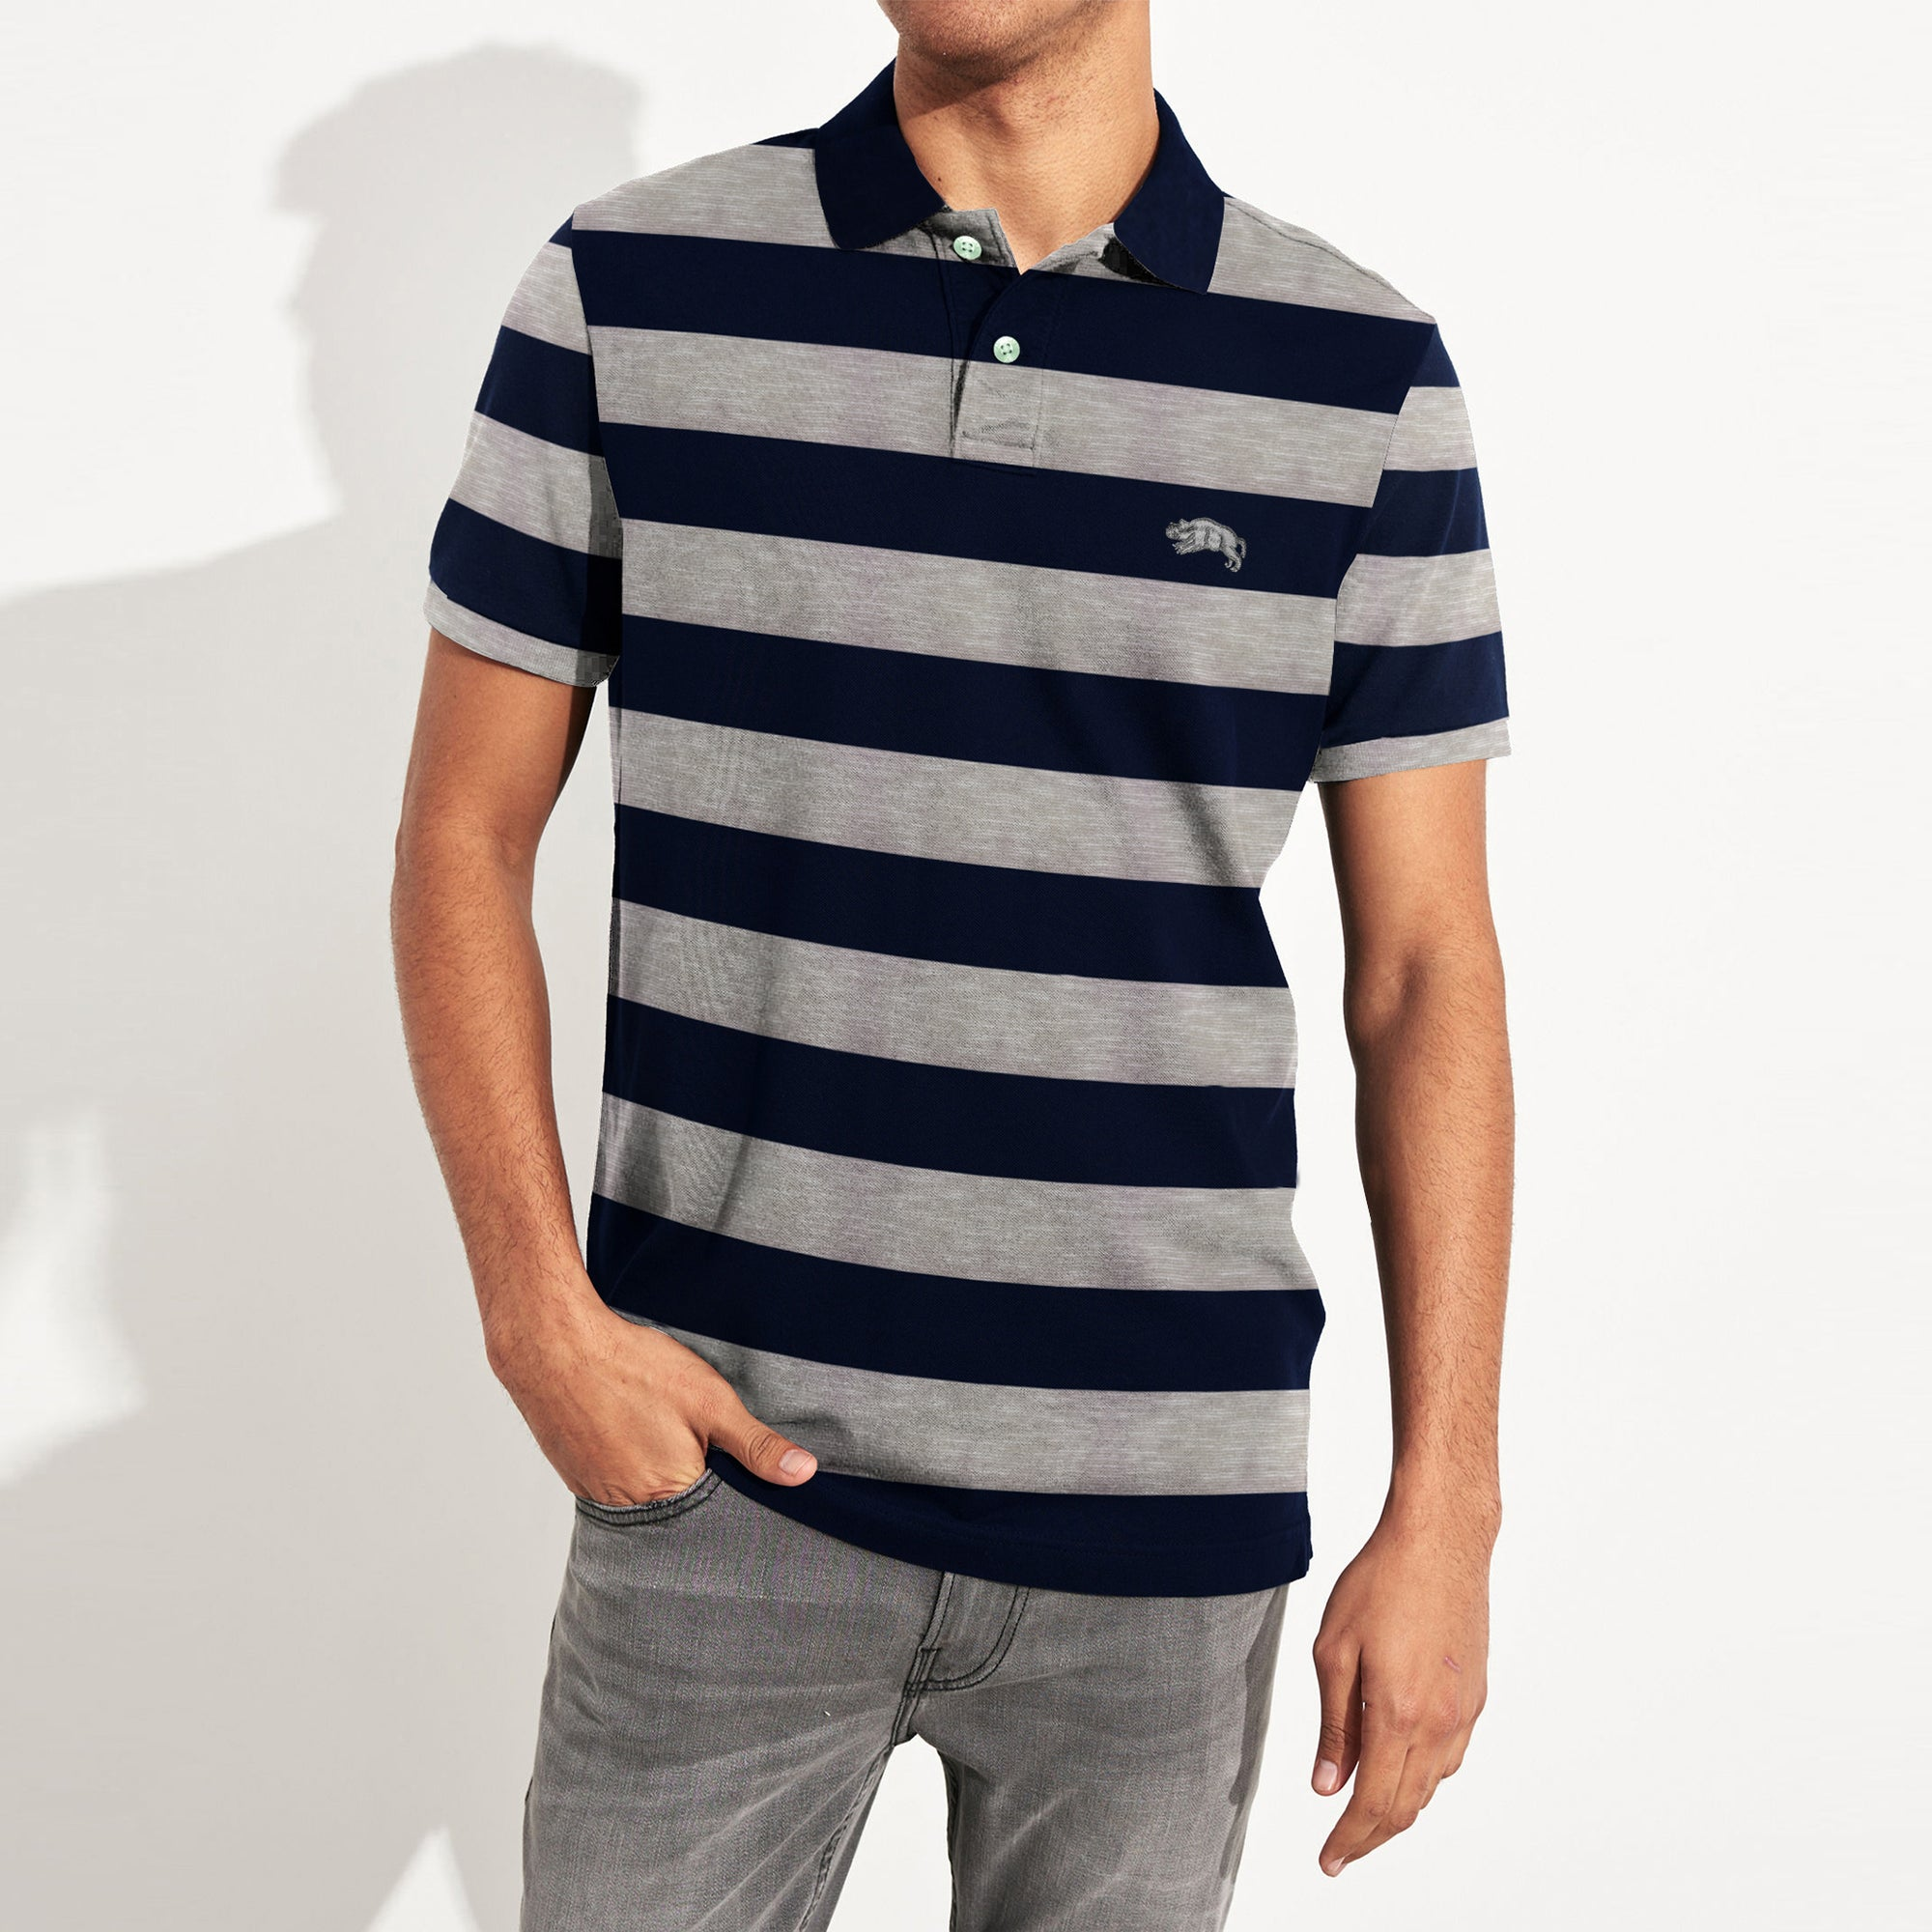 American Rag Short Sleeve Single Jersey Polo Shirt For Men Dark Navy Skin Stripe Sp036